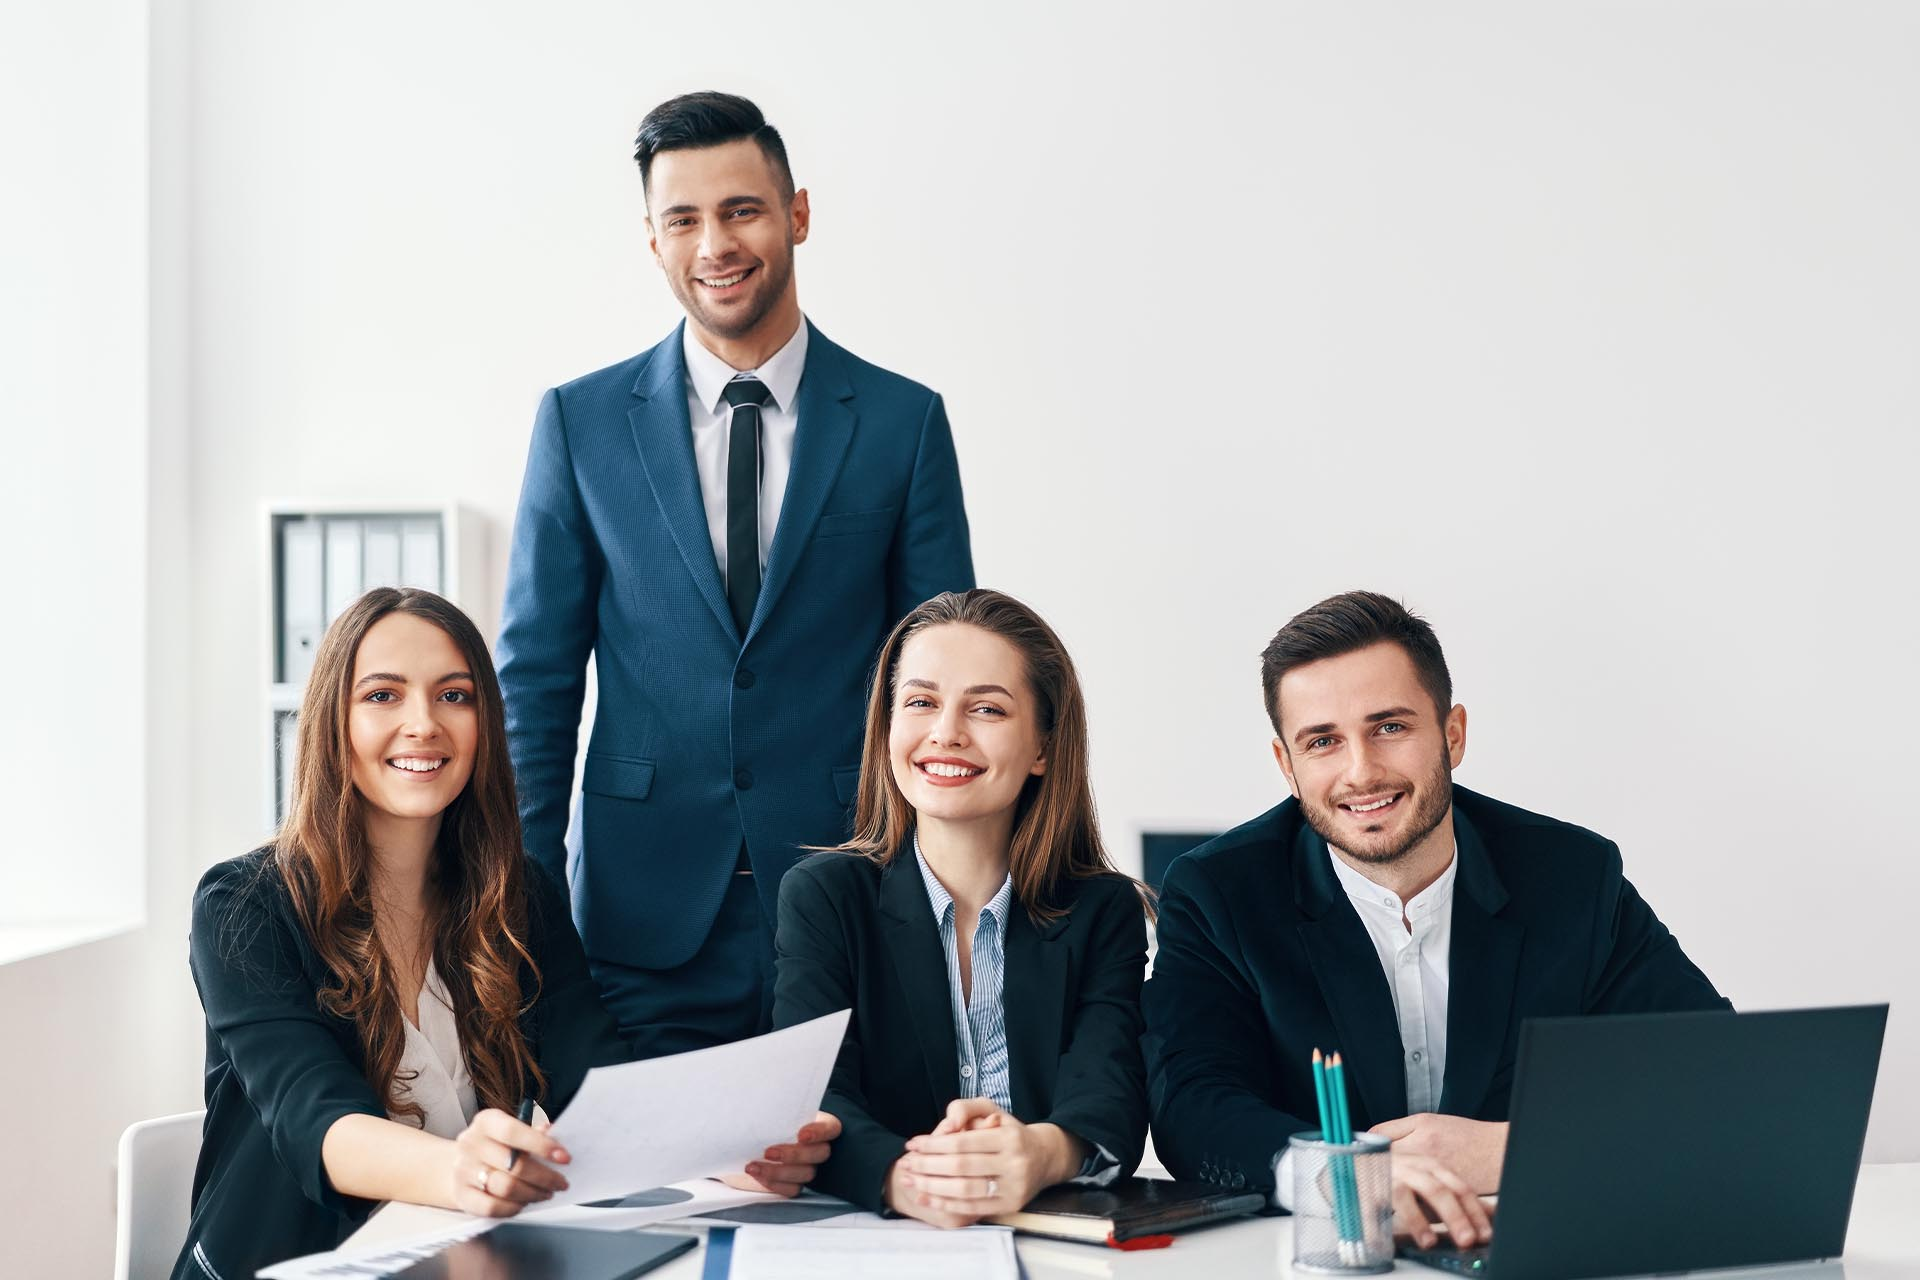 Group of smiling coworkers